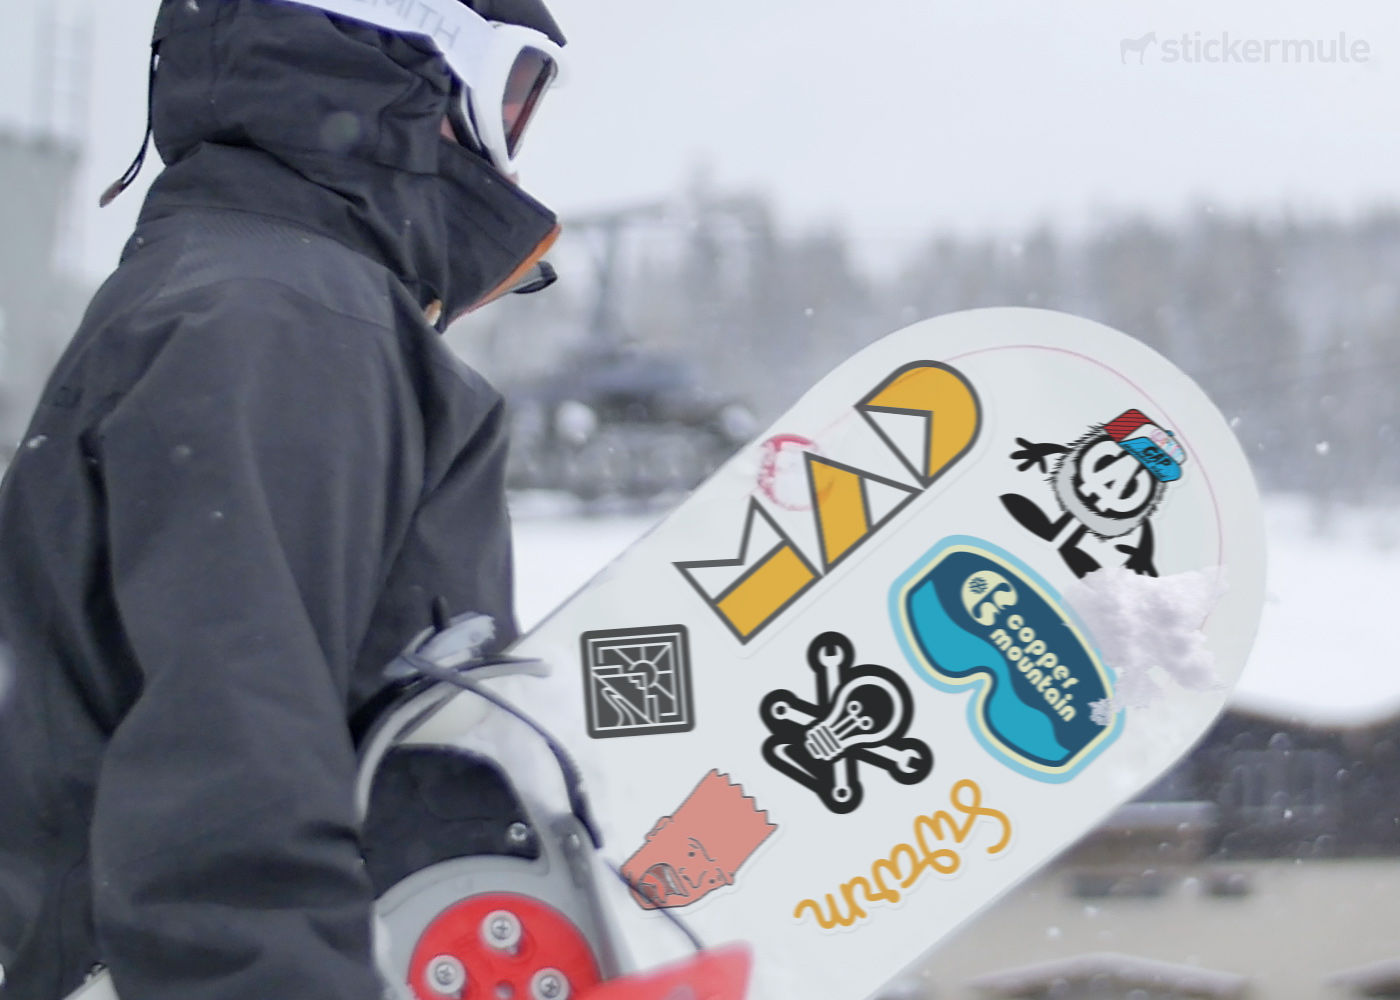 Snowboard stickers